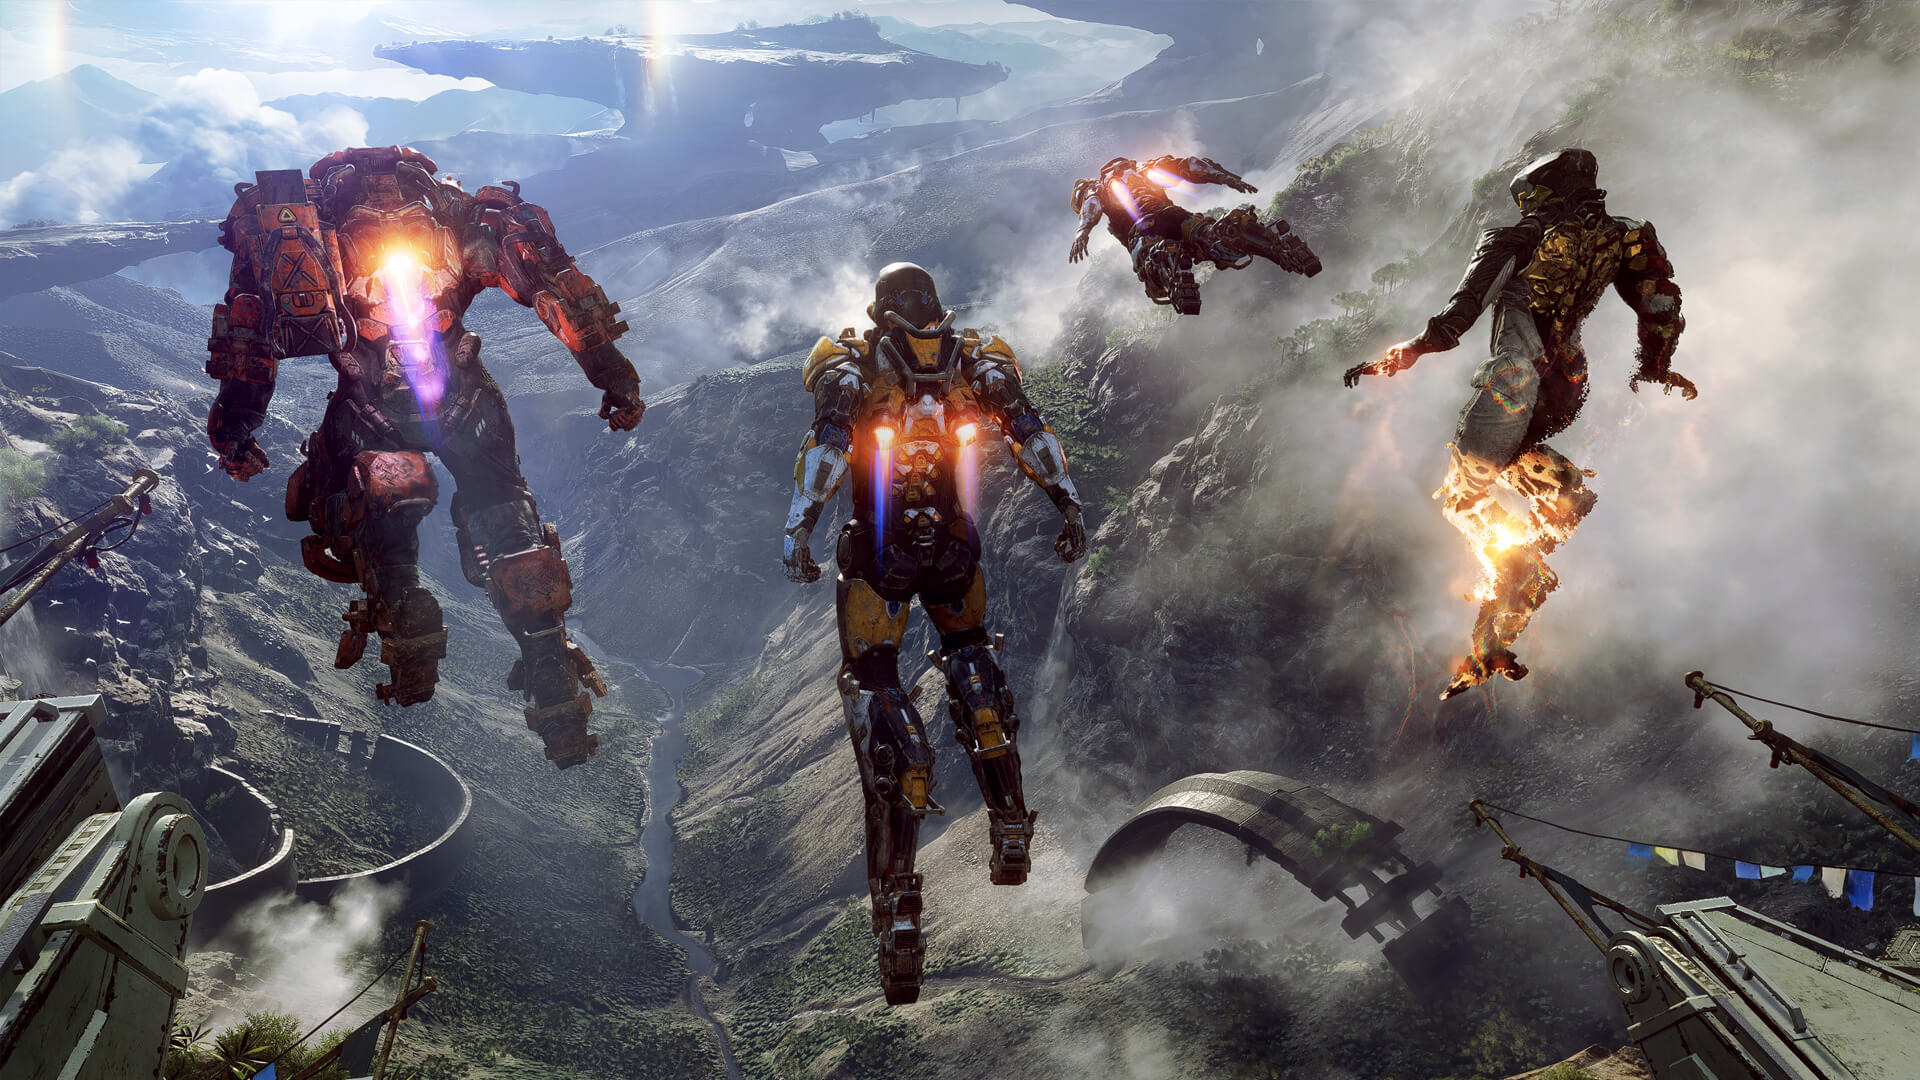 Bioware's Anthem - What We Know So Far